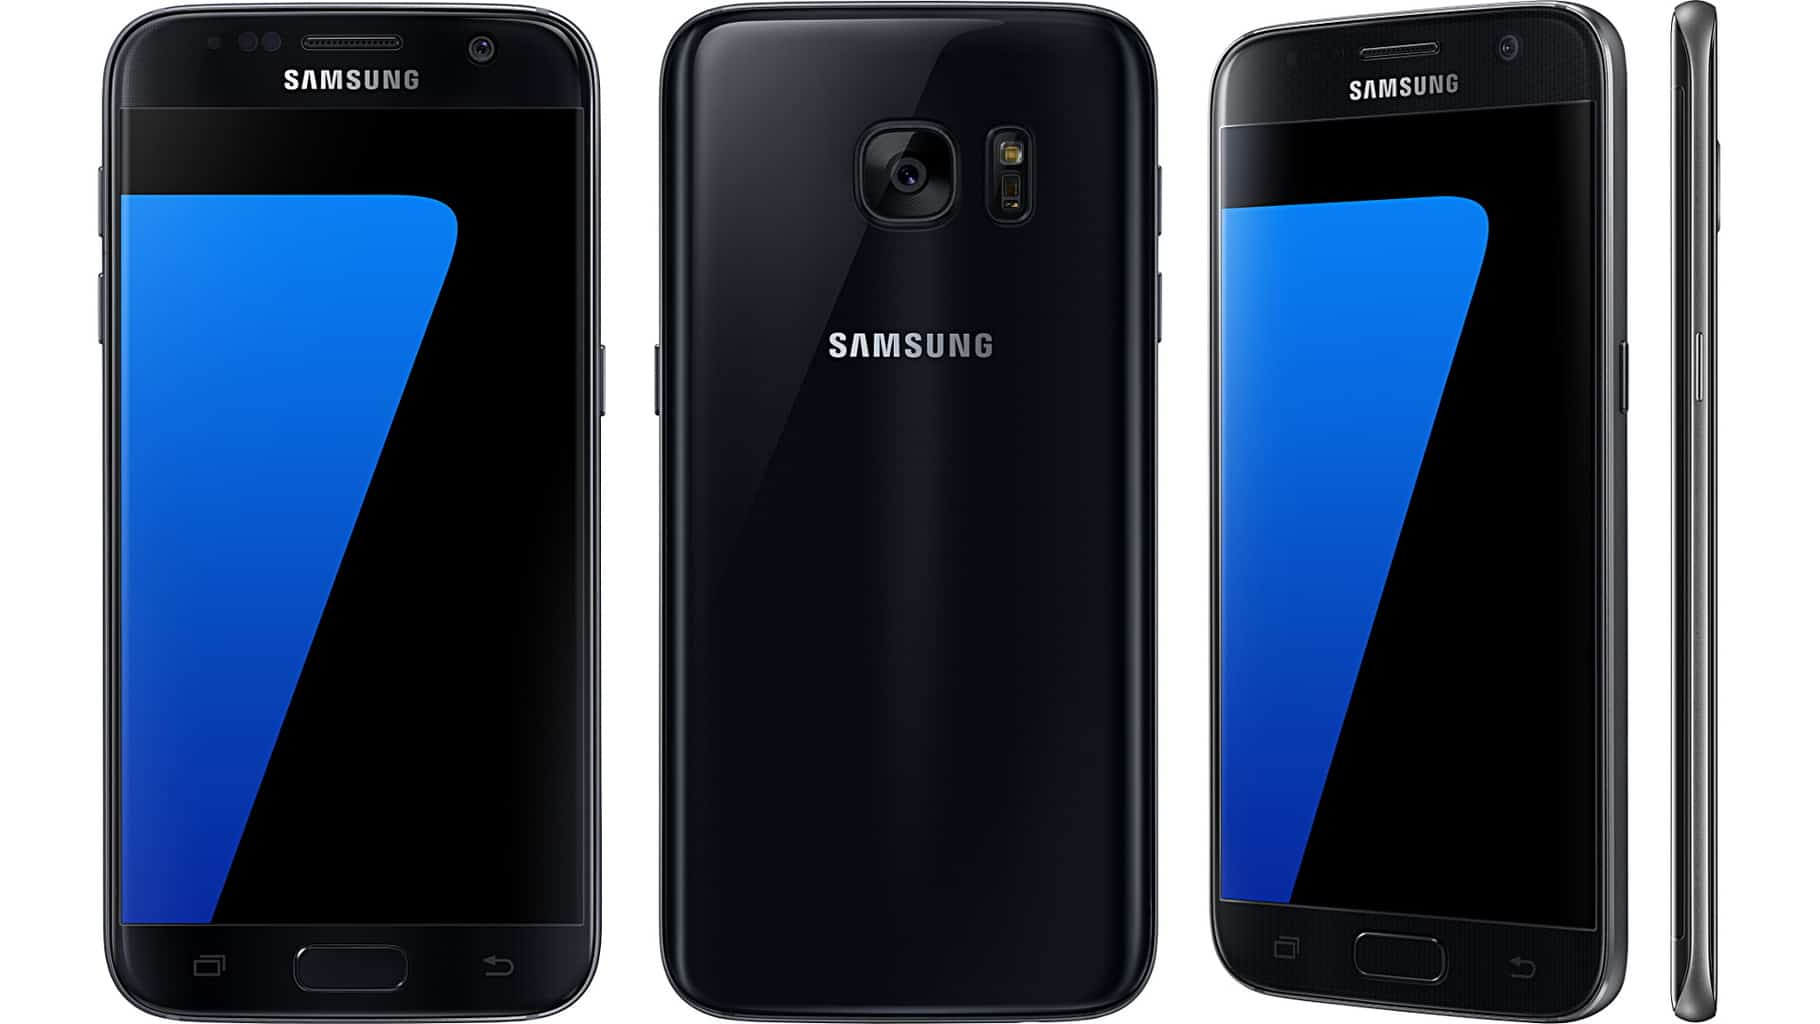 recenze samsung galaxy s7 edge testado. Black Bedroom Furniture Sets. Home Design Ideas